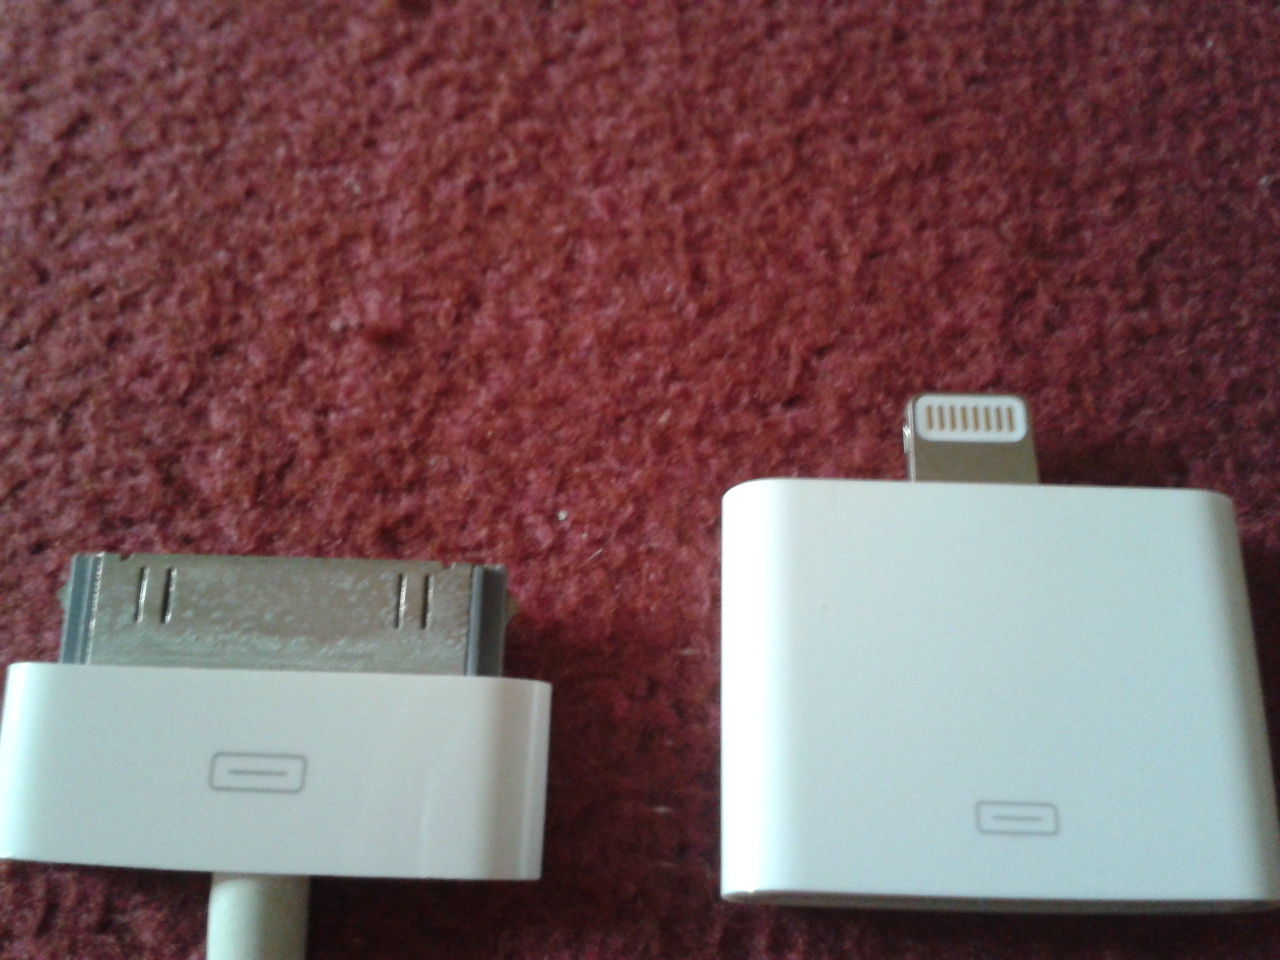 Apple Lightning Adaptor compared to 30-pin connector